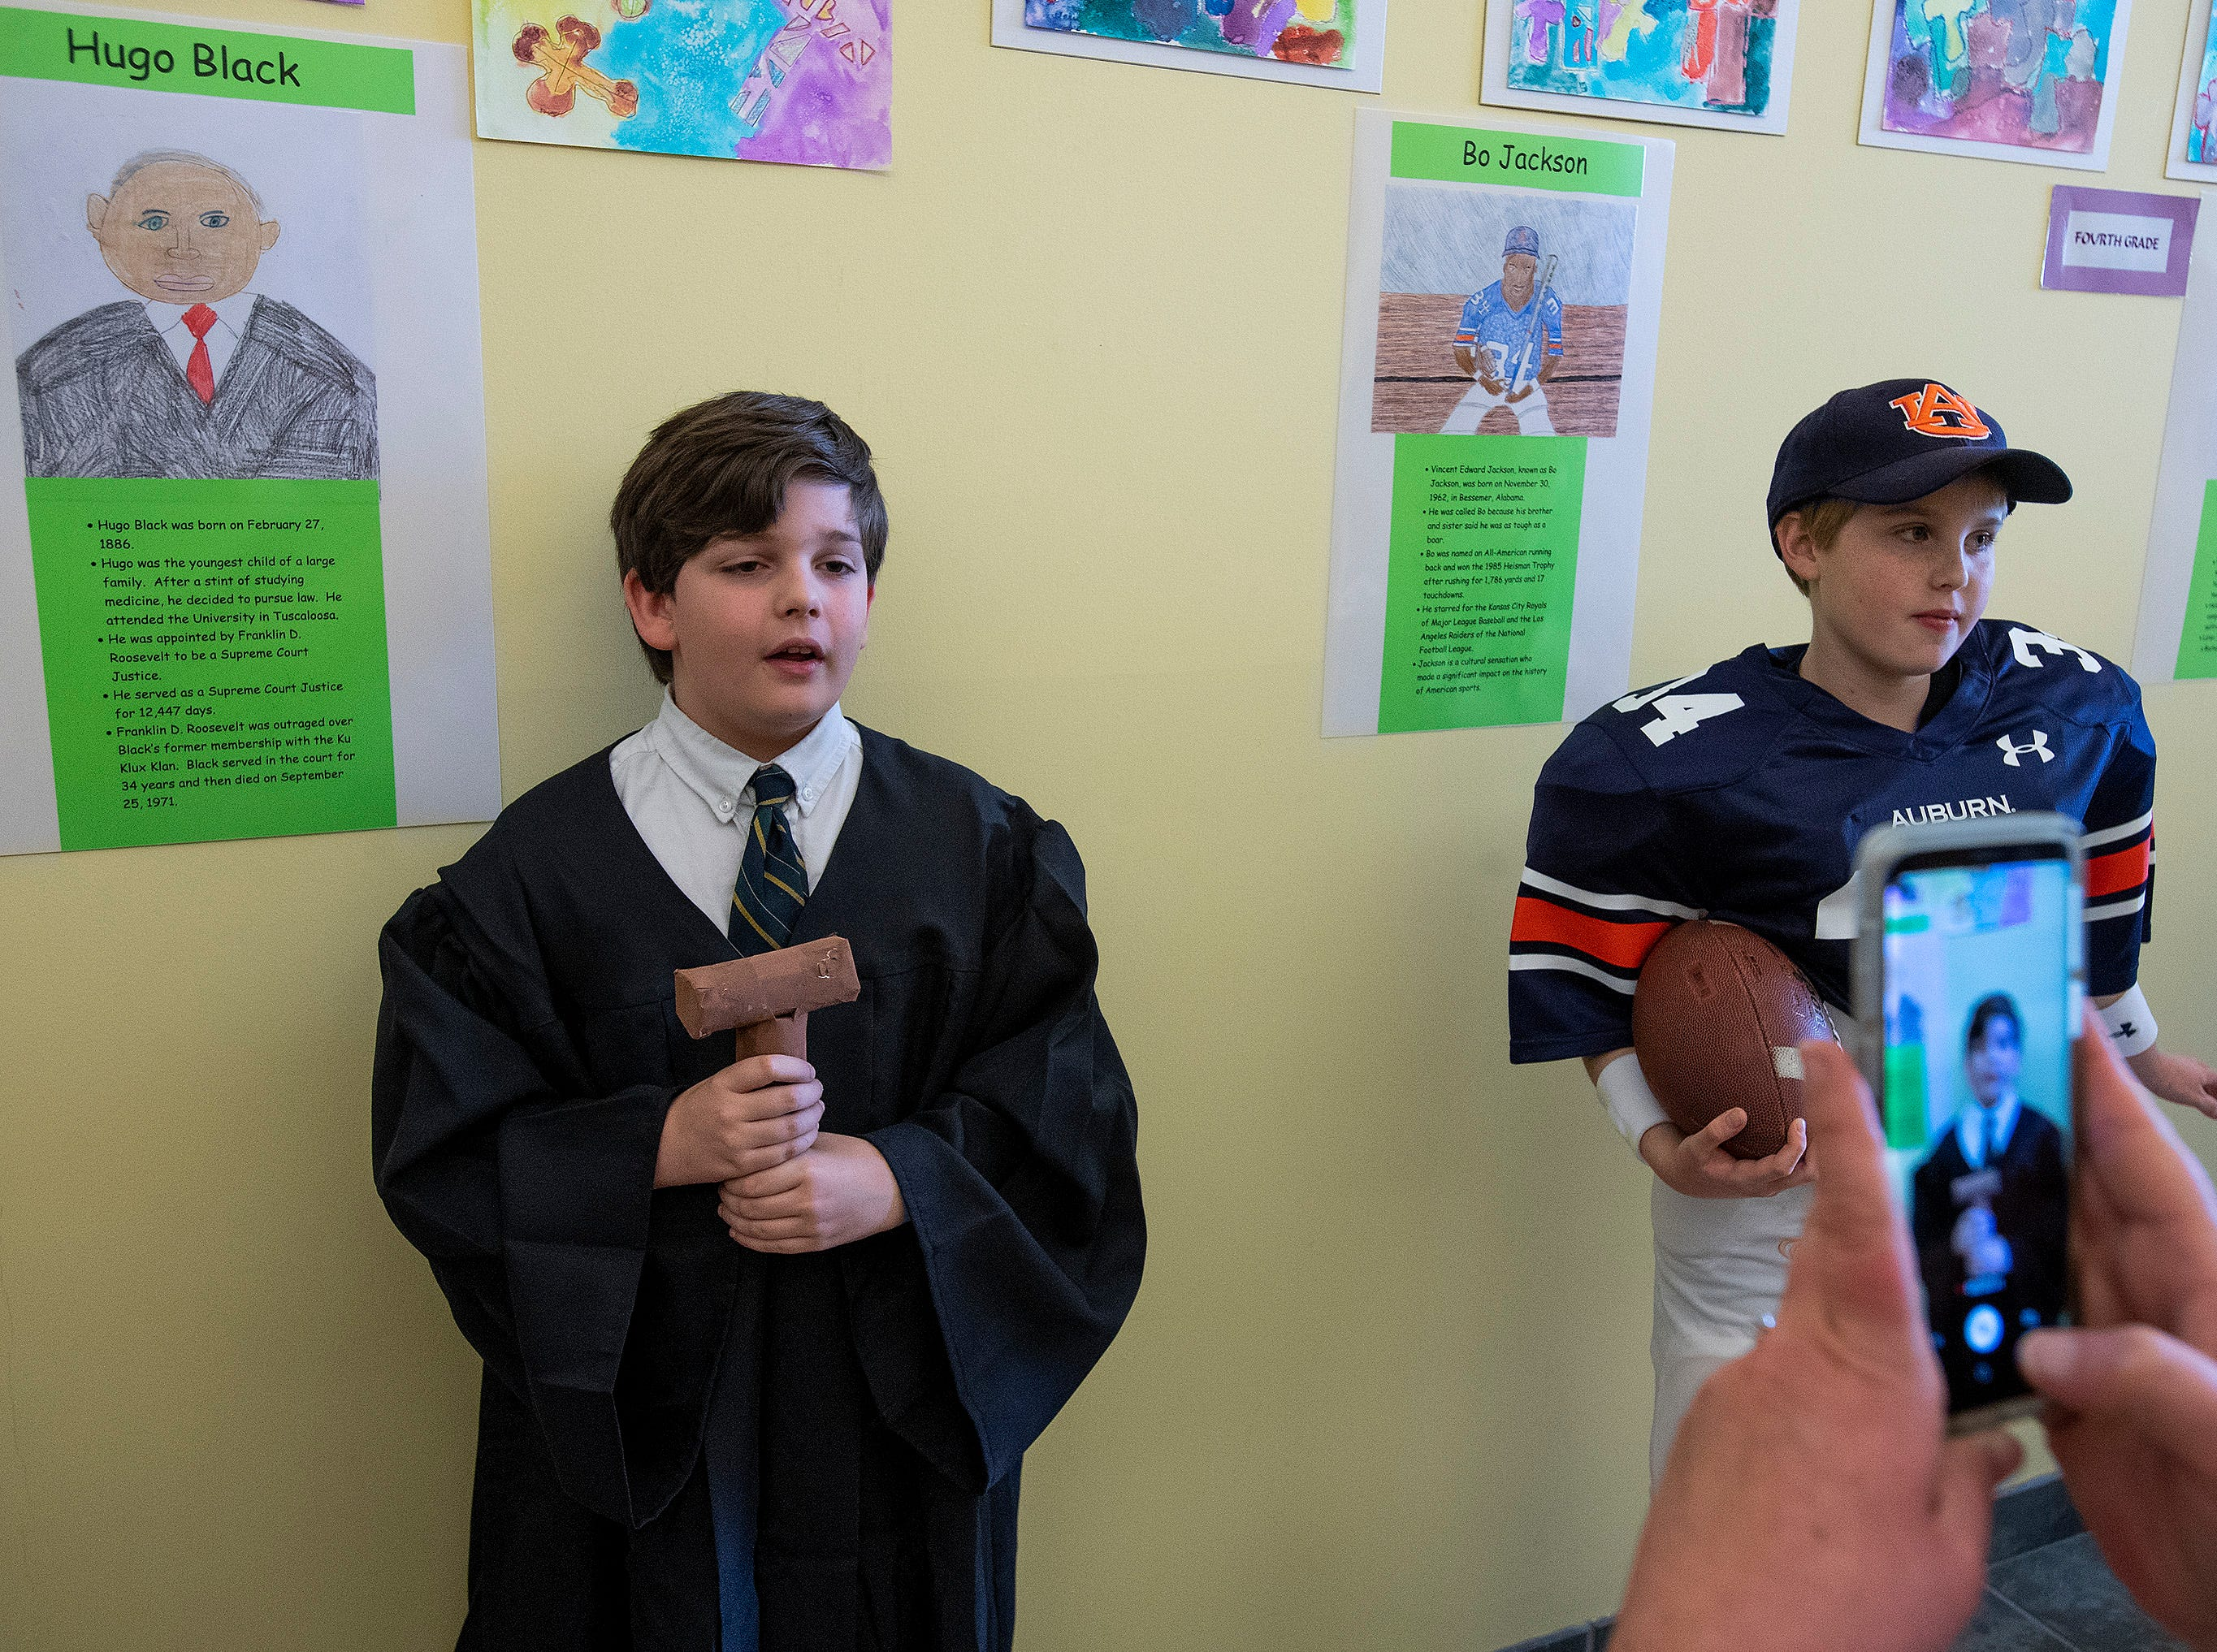 Cullen Stuart plays Hugo Black and Steadman Meadows plays Bo Jackson as students portray Alabamians in their Alabama Bicentennial Wax Museum, telling the stories of their characters to visitors, at Holy Cross Episcopal School in Montgomery, Ala., on Friday February 15, 2019.